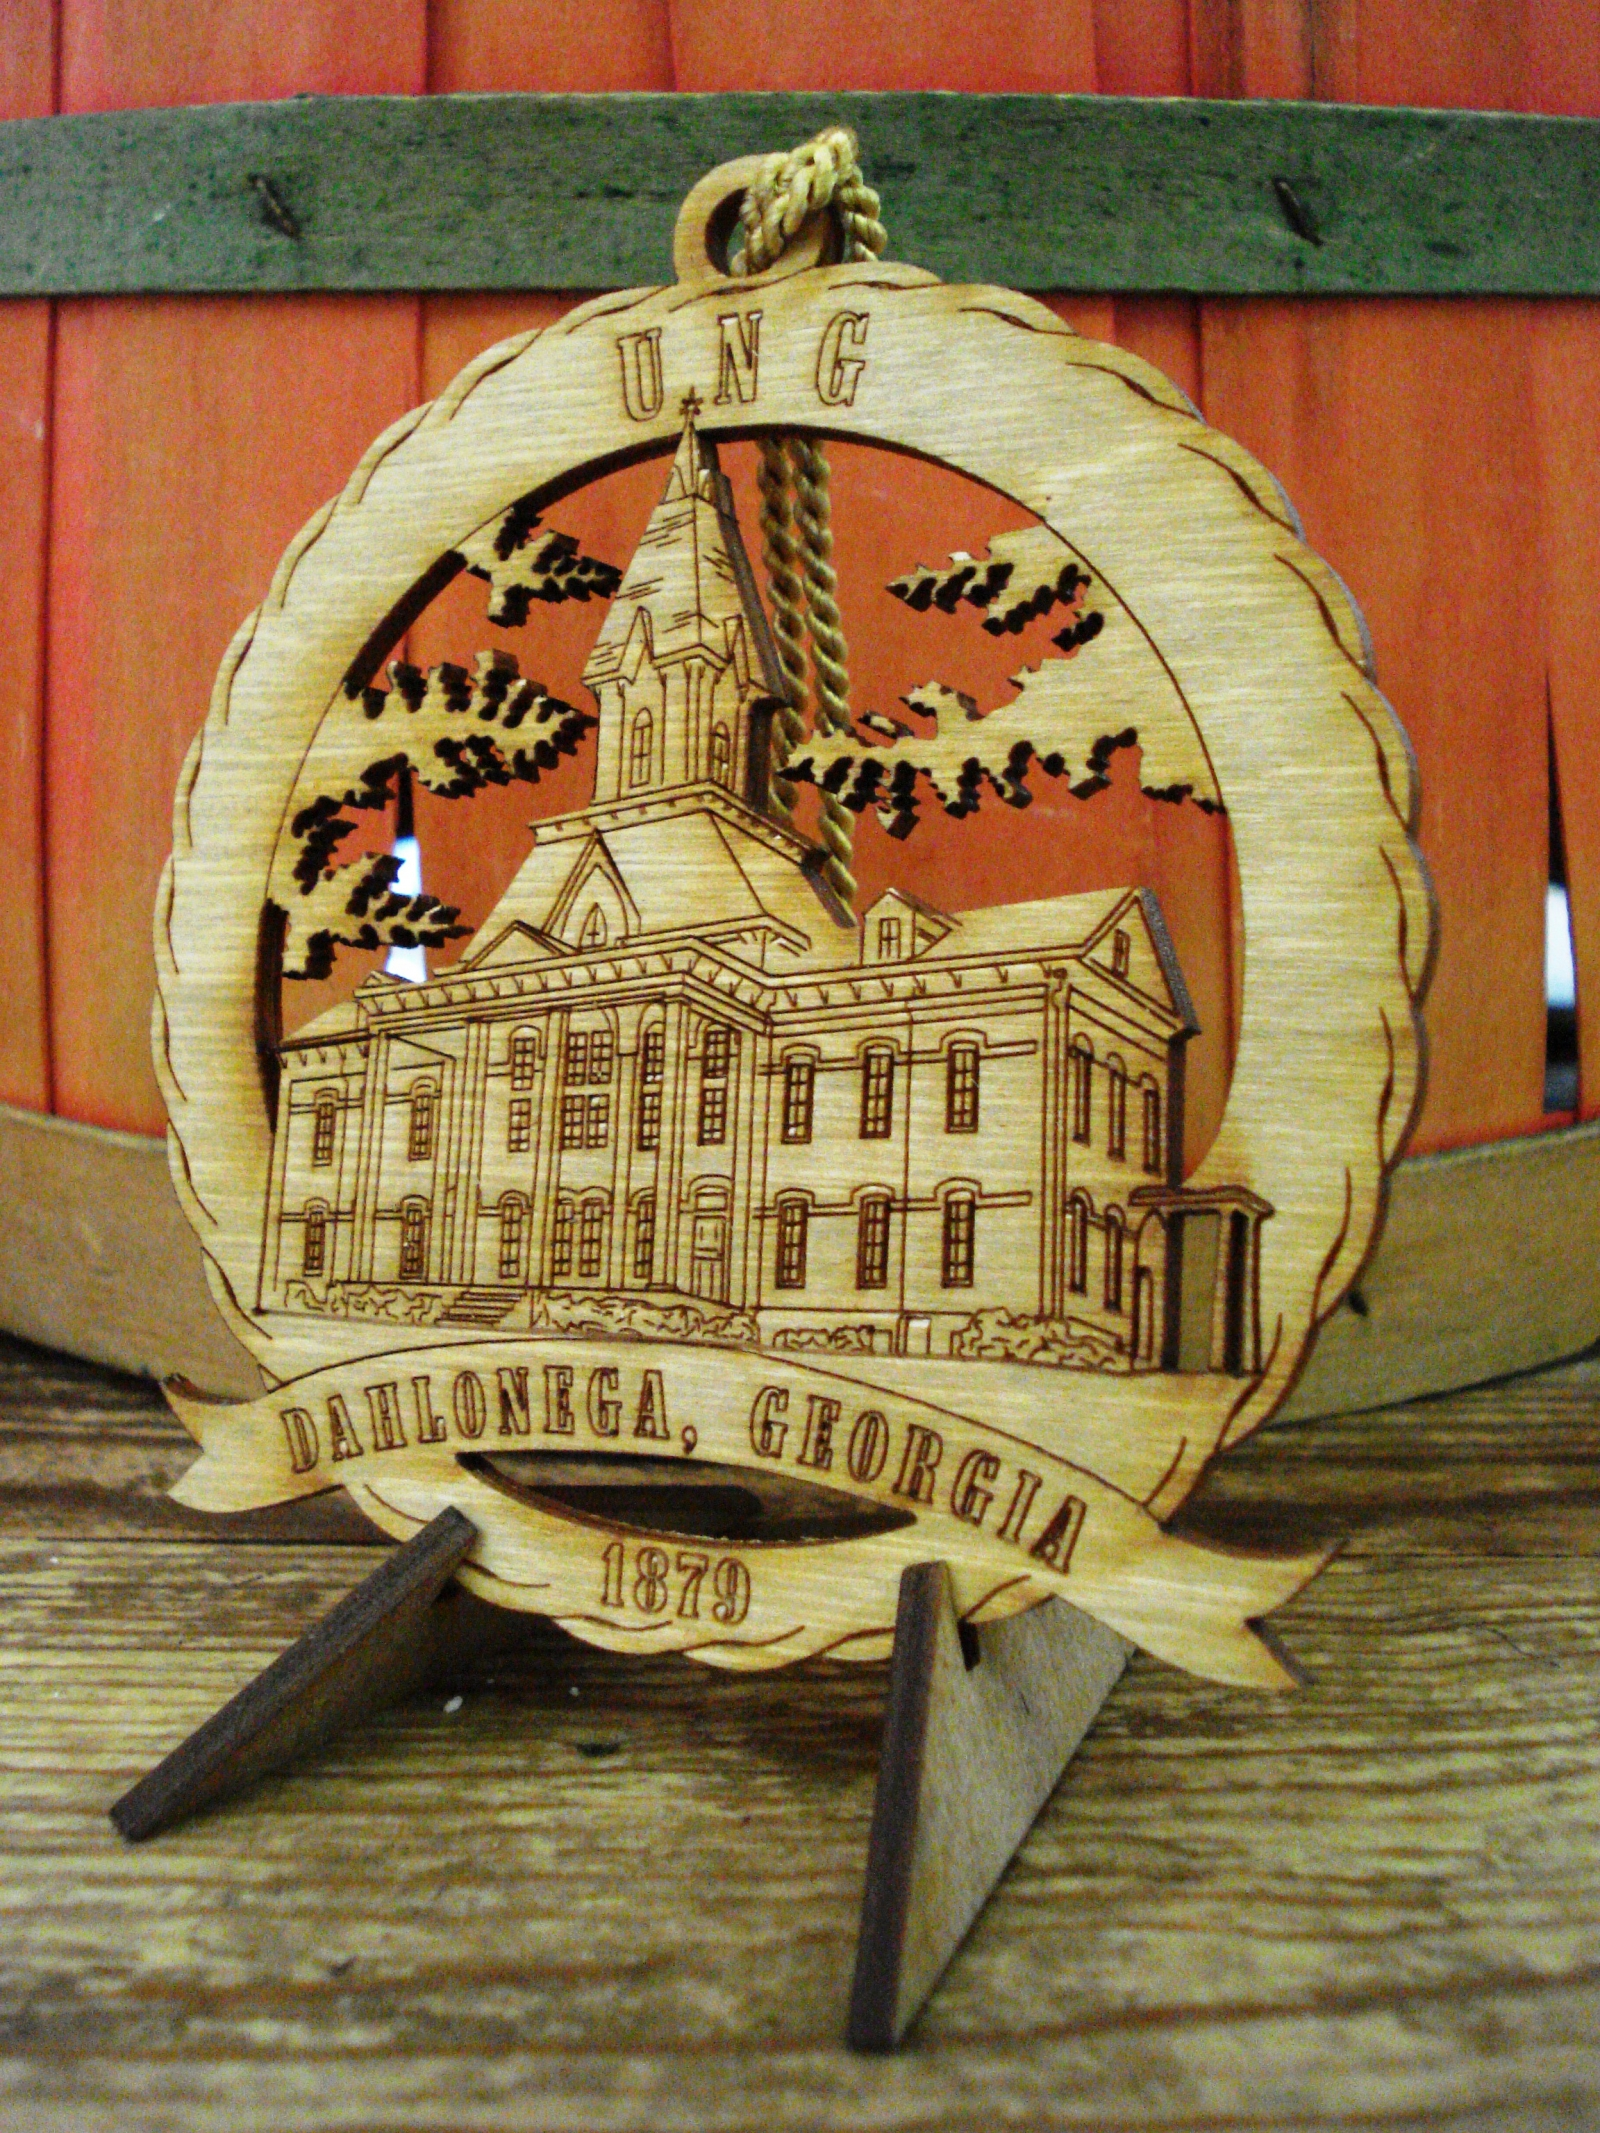 University of North Georgia Souvenir Ornament